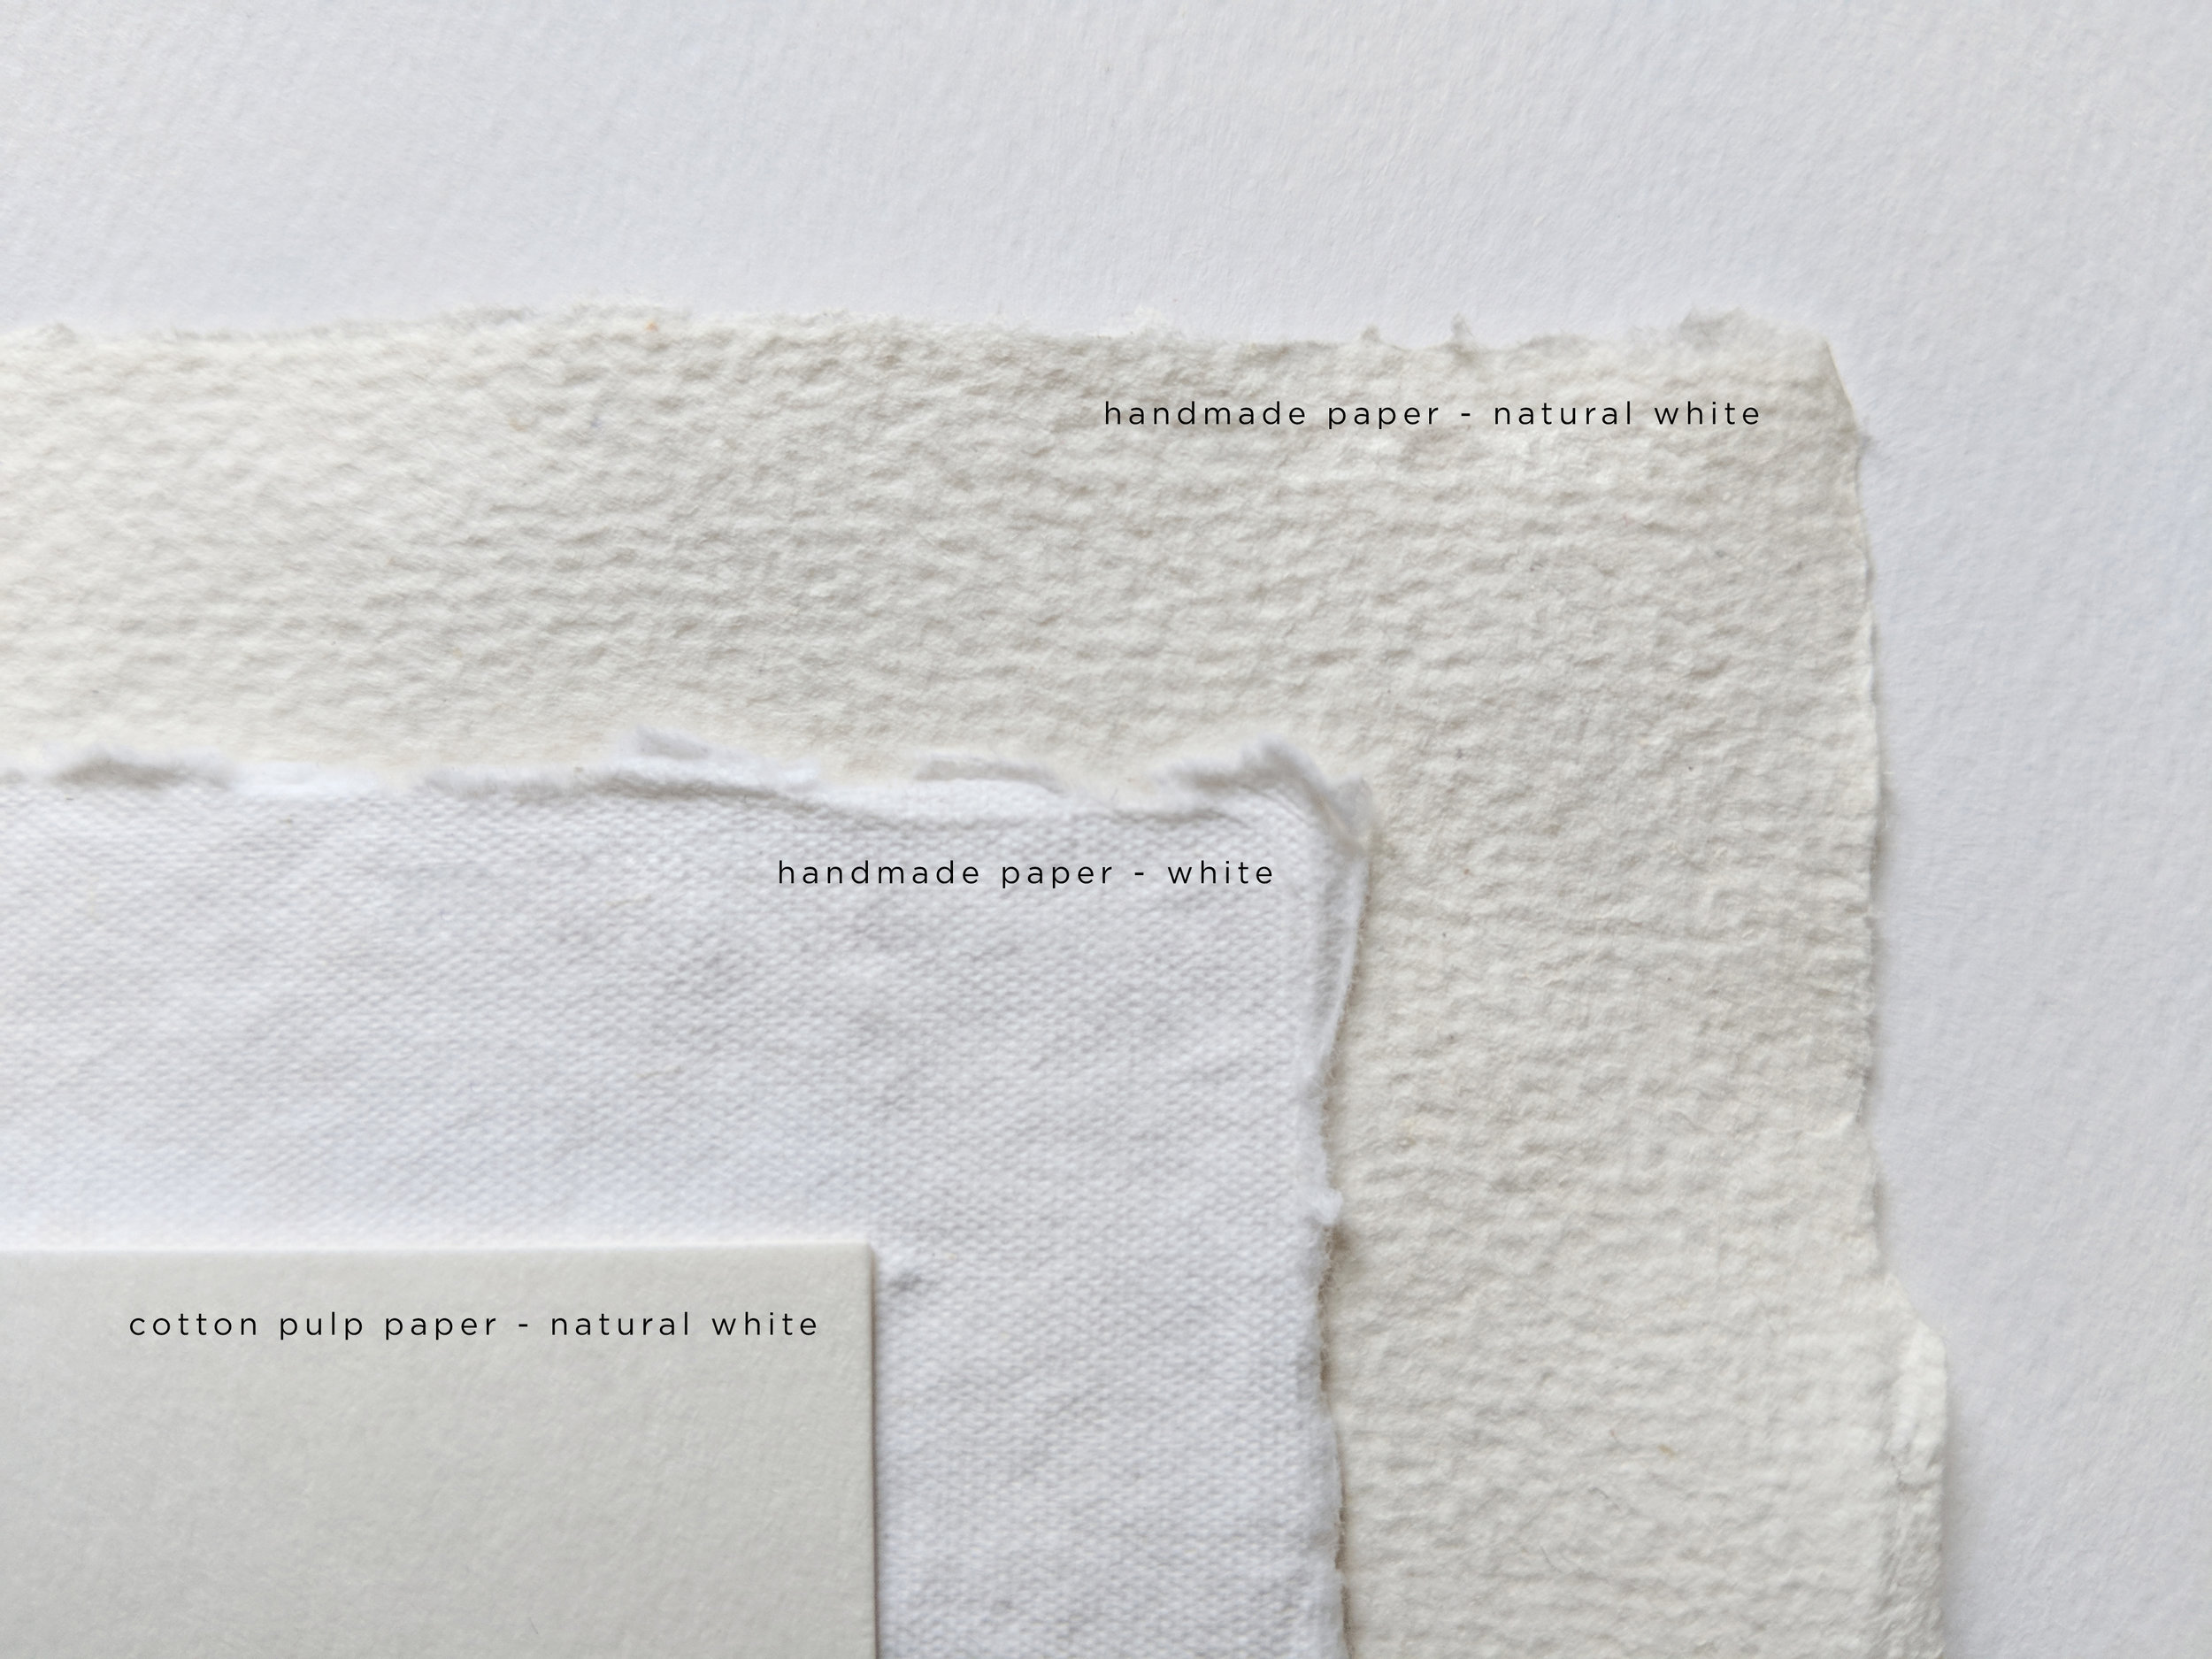 papersamples